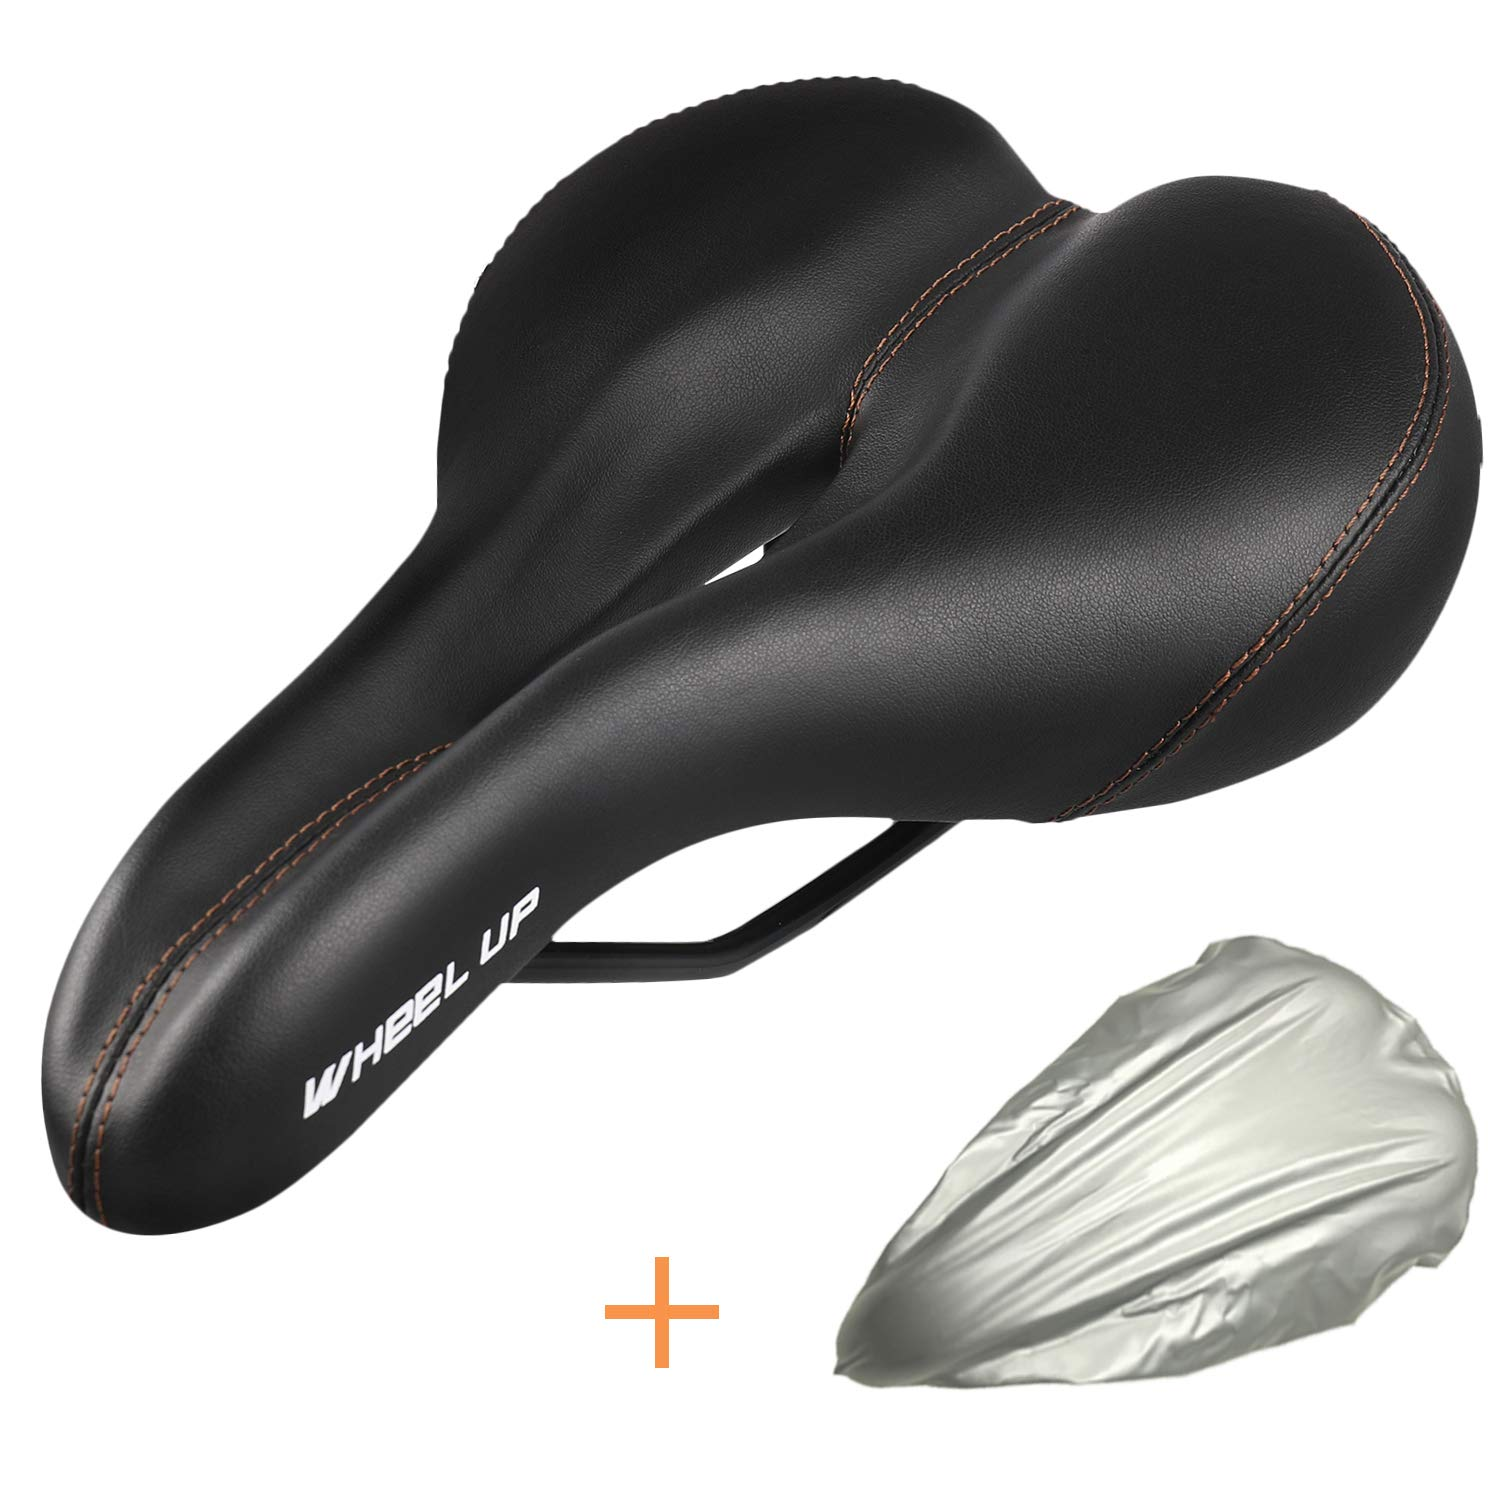 Pioneeryao Professional Bicycle Bike Seat Gel Bike Saddle by Pioneeryao